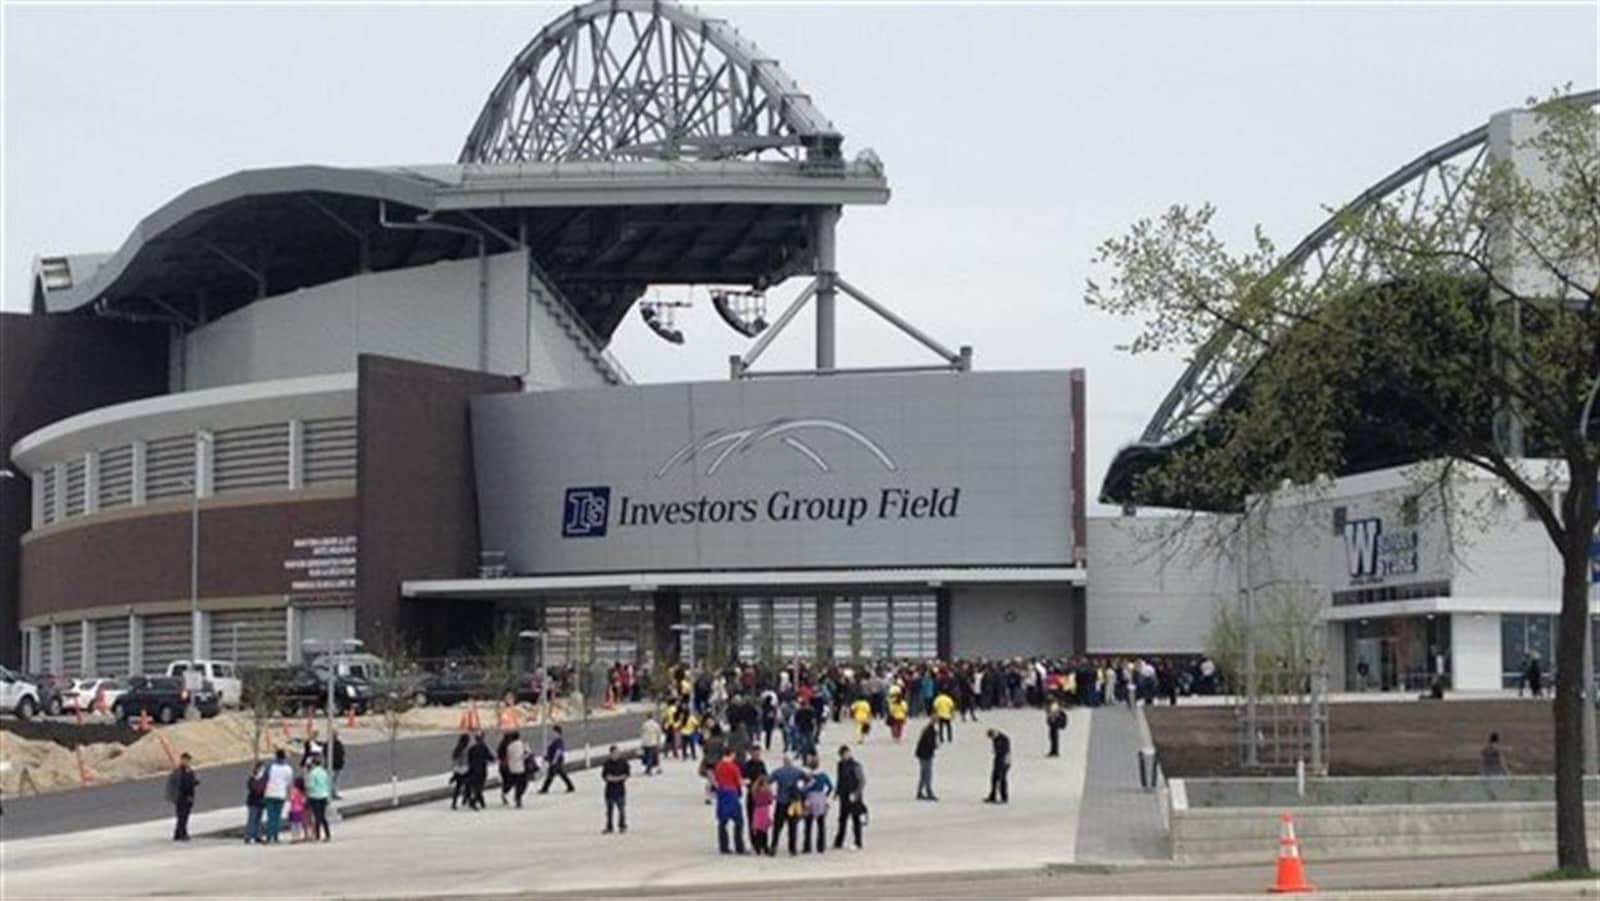 Le stade Investors Group Field